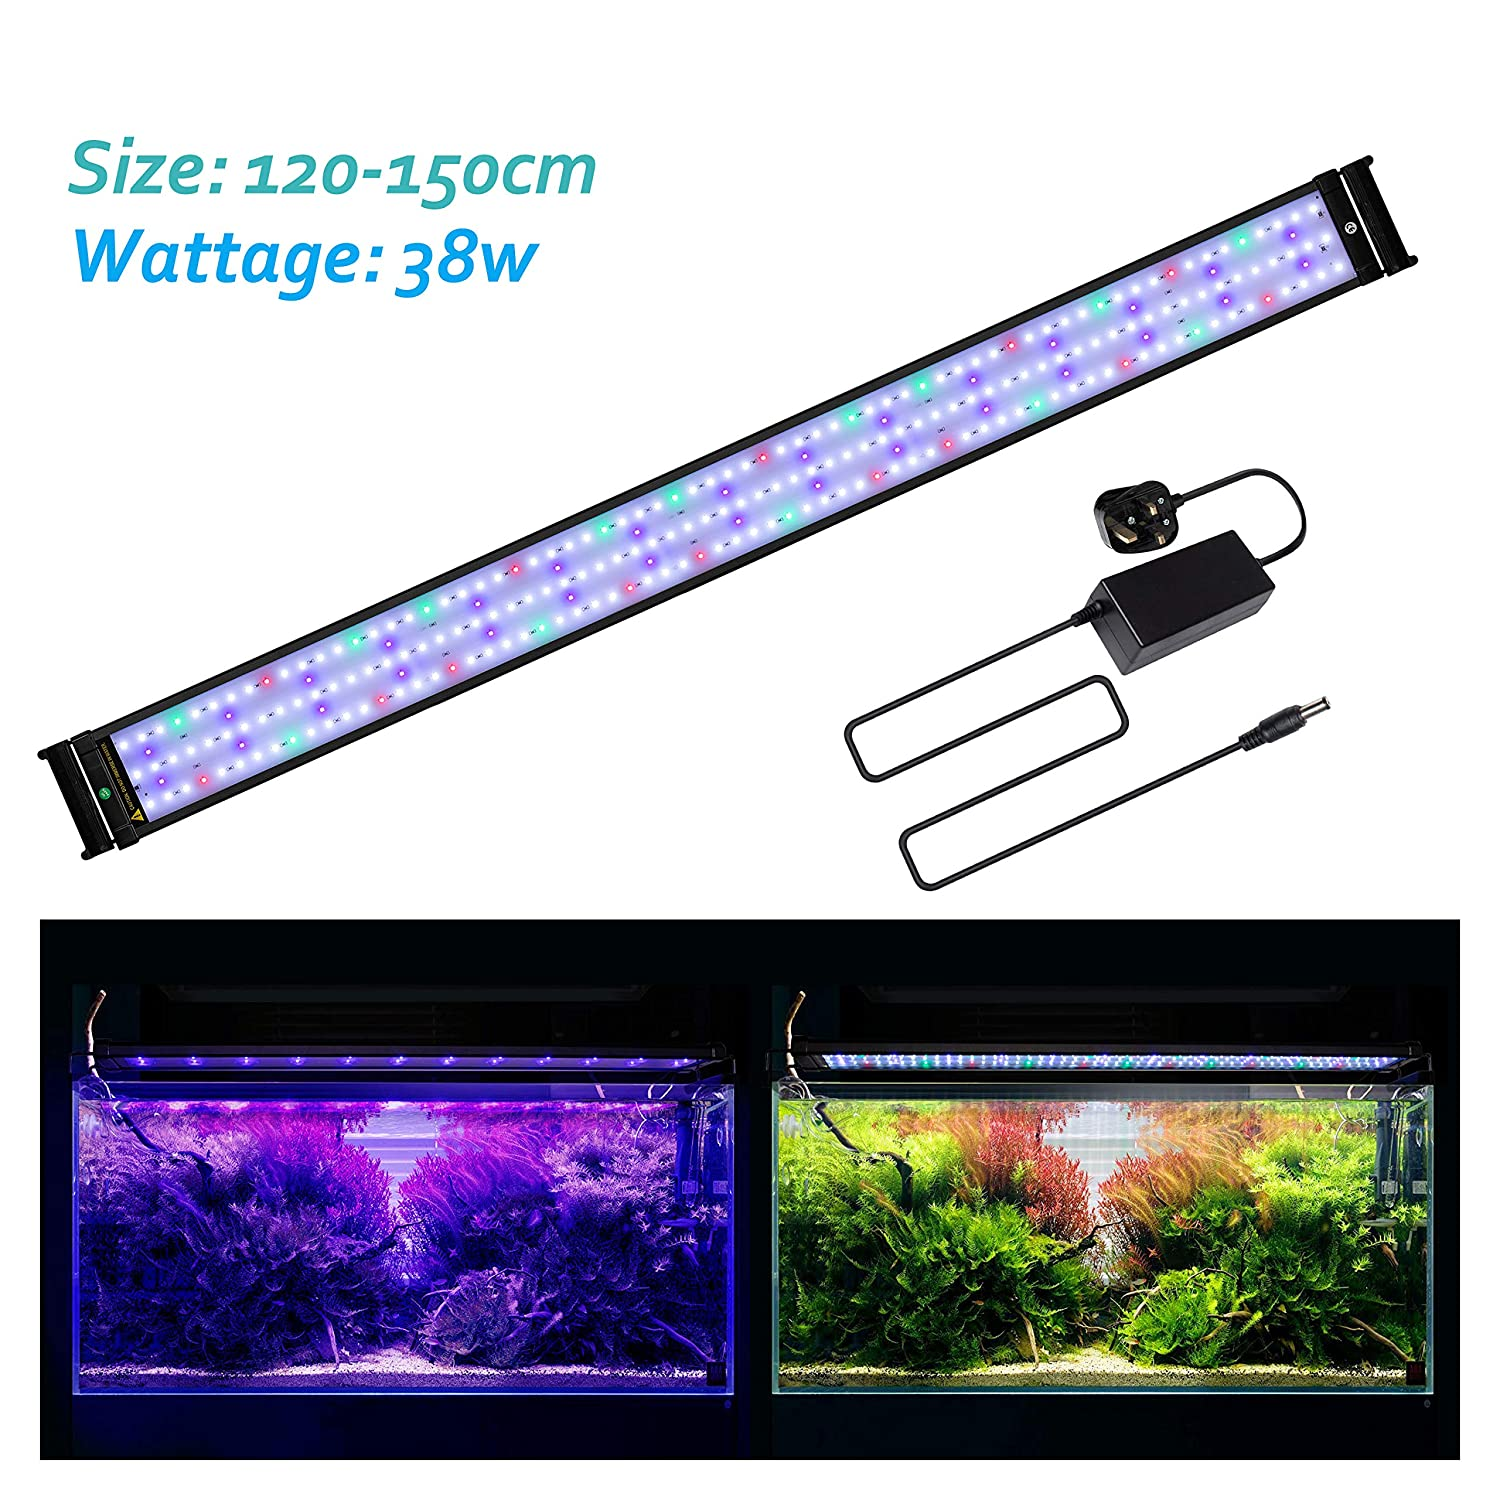 Full Spectrum 116cm-136cm 46-54 inch Full Spectrum 116cm-136cm 46-54 inch JOYHILL LED Full Spectrum Aquarium Lights,Fish Tank Light with Extendable Brackets,Suitable for Aquatic Reef Coral Plants and Fish Keeping 38W (Fit 116cm-136cm 46-54 inch)